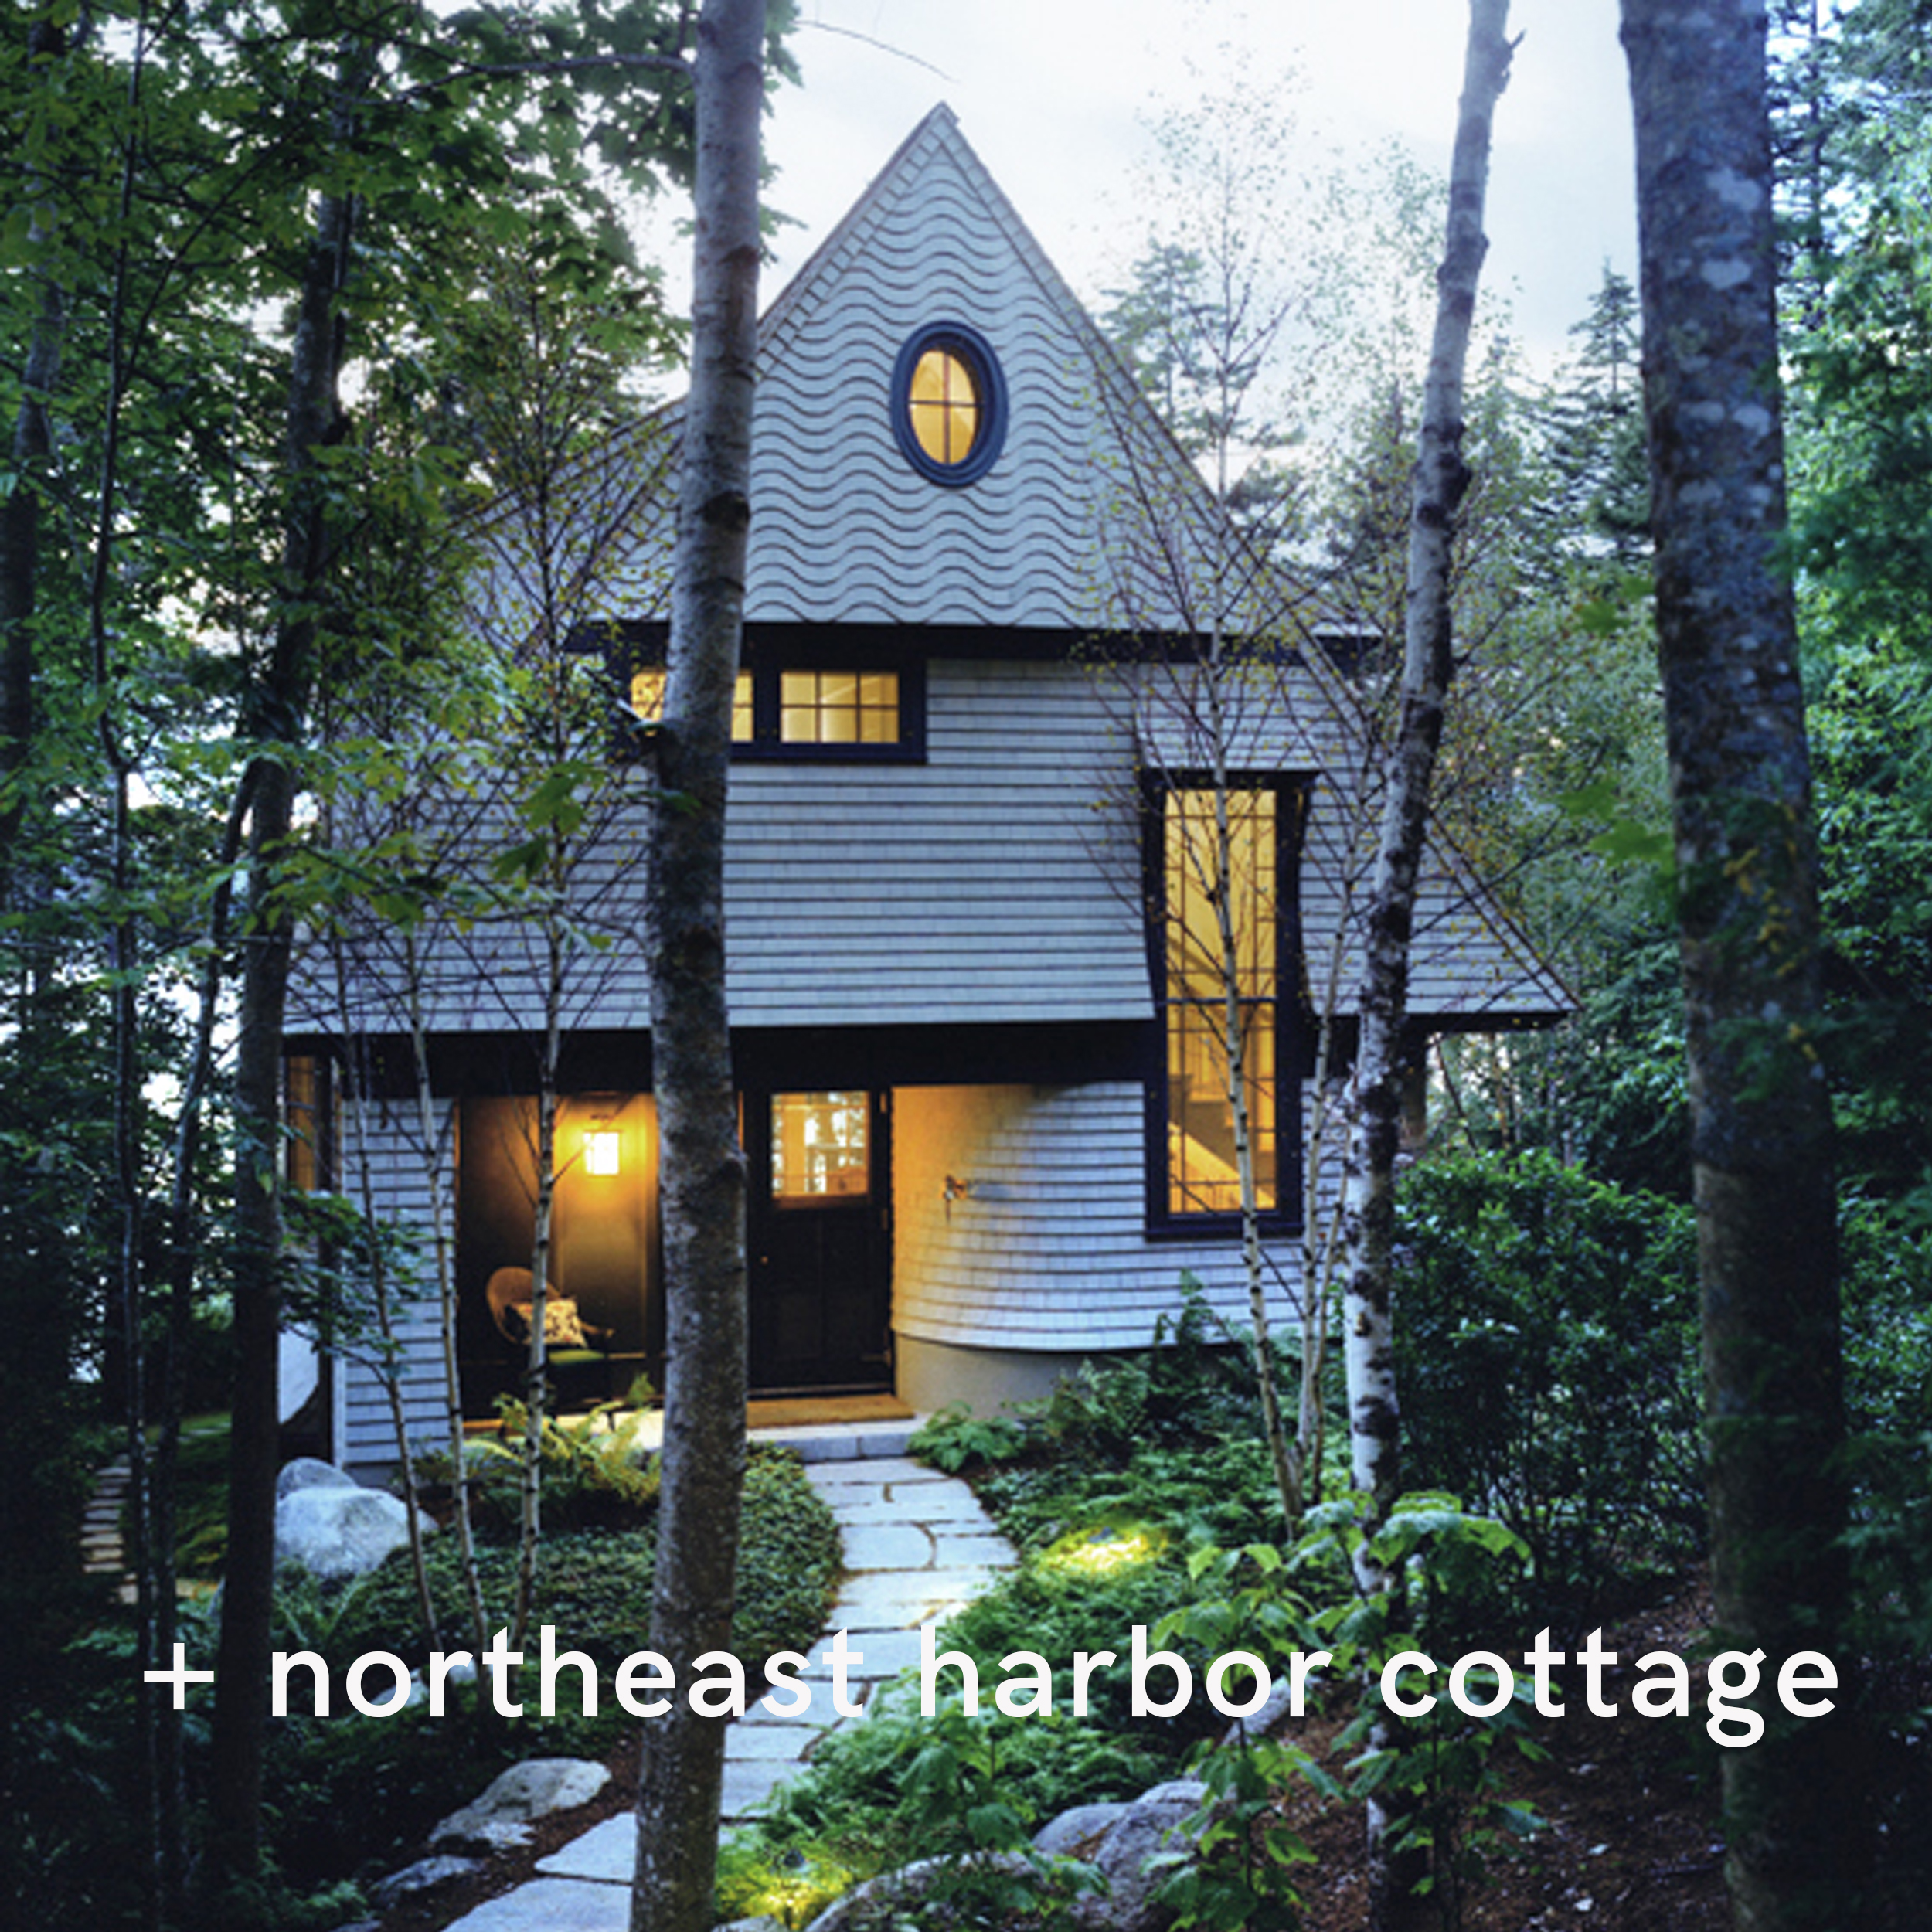 northeast harbor cottage.jpg